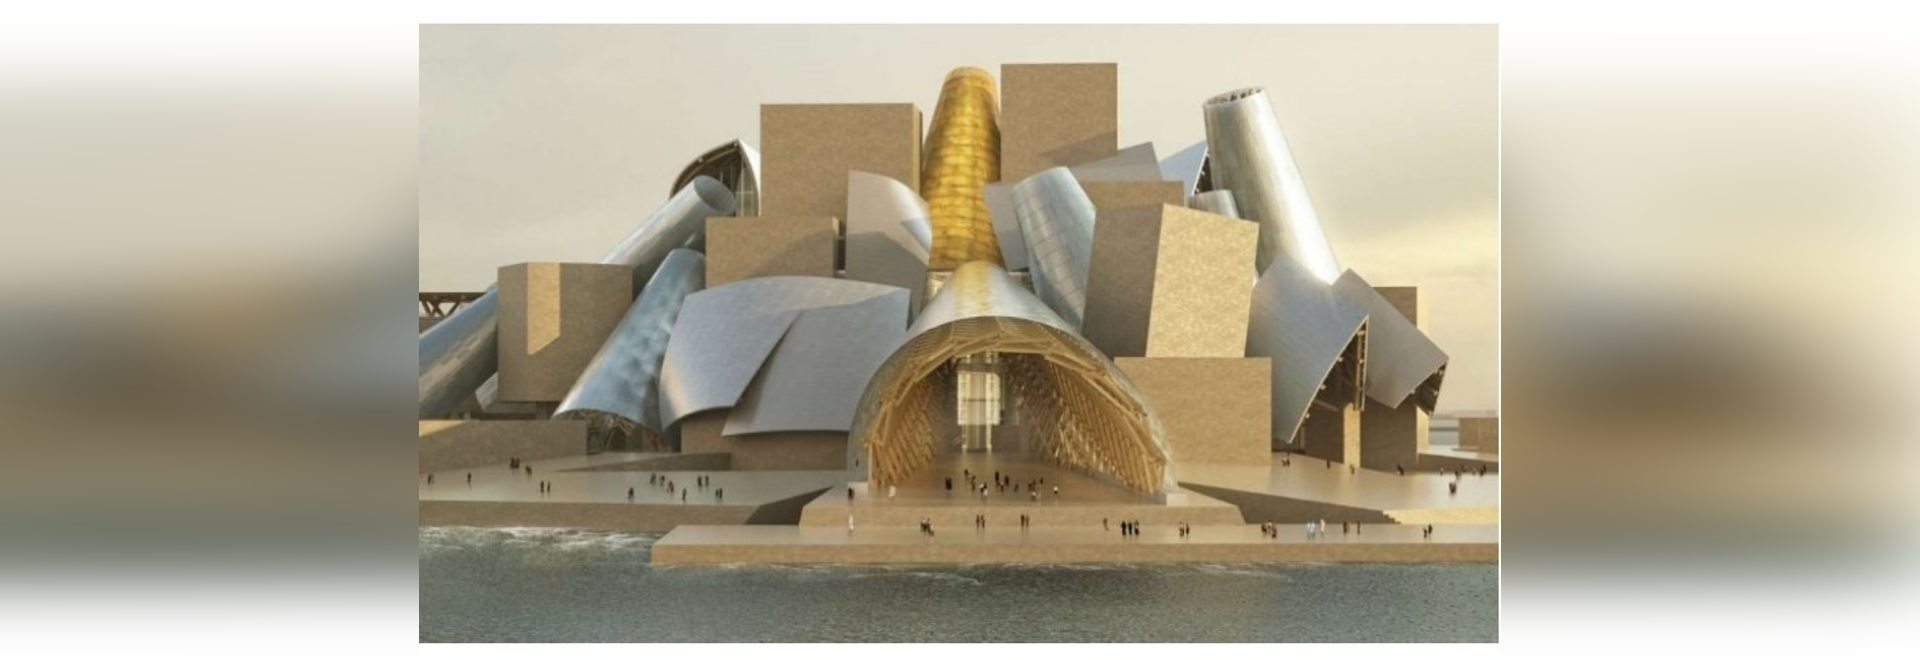 frank gehry's guggenheim museum in abu dhabi has a new opening date: 2026